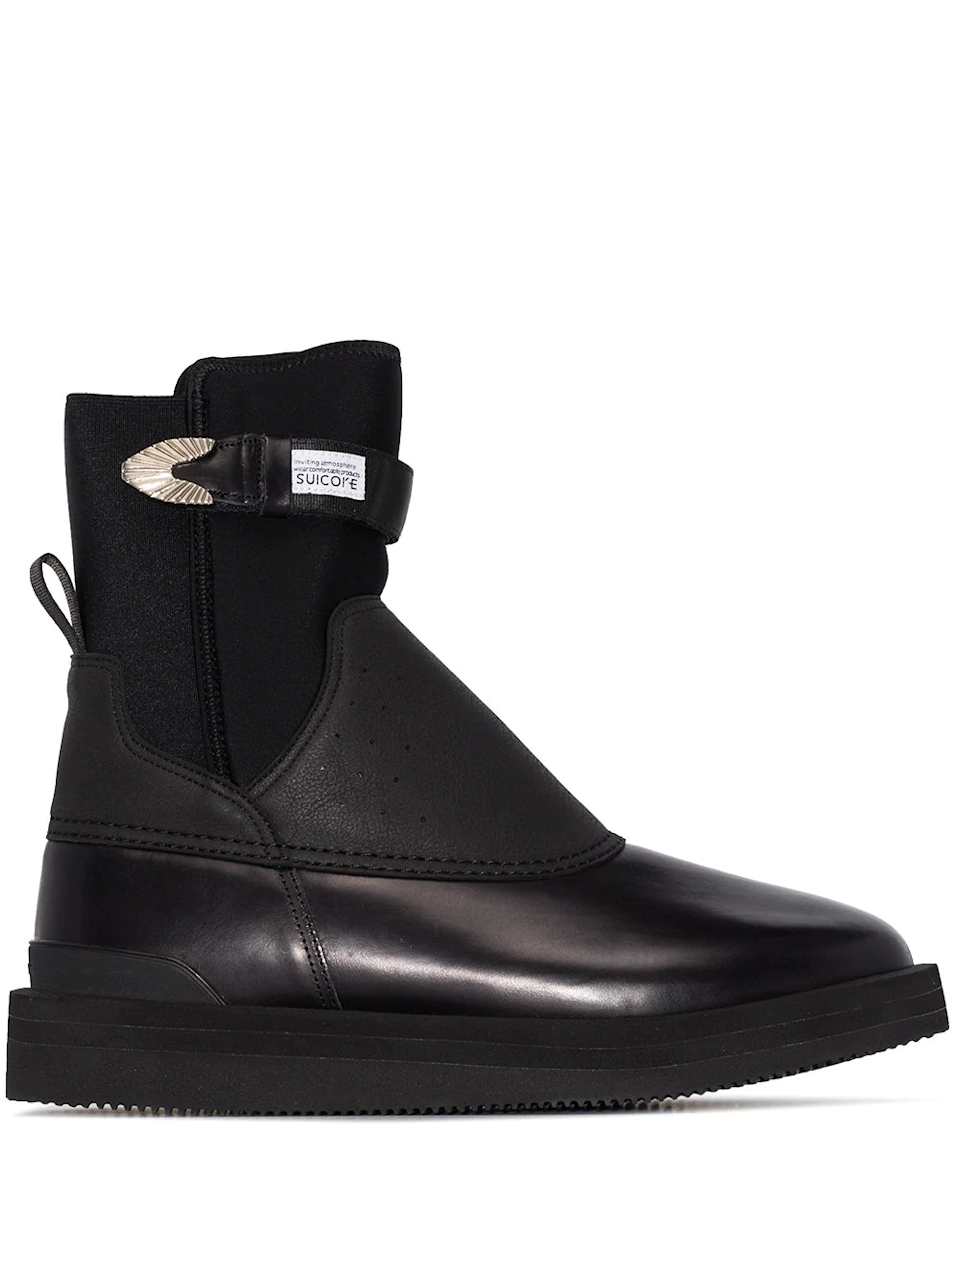 "<br><br><strong>Toga Virilis x Suicoke</strong> Boots, $, available at <a href=""https://go.skimresources.com/?id=30283X879131&url=https%3A%2F%2Fwww.farfetch.com%2Fshopping%2Fmen%2Ftoga-virilis-x-suicoke-boots-item-15489635.aspx"" rel=""nofollow noopener"" target=""_blank"" data-ylk=""slk:Farfetch"" class=""link rapid-noclick-resp"">Farfetch</a>"